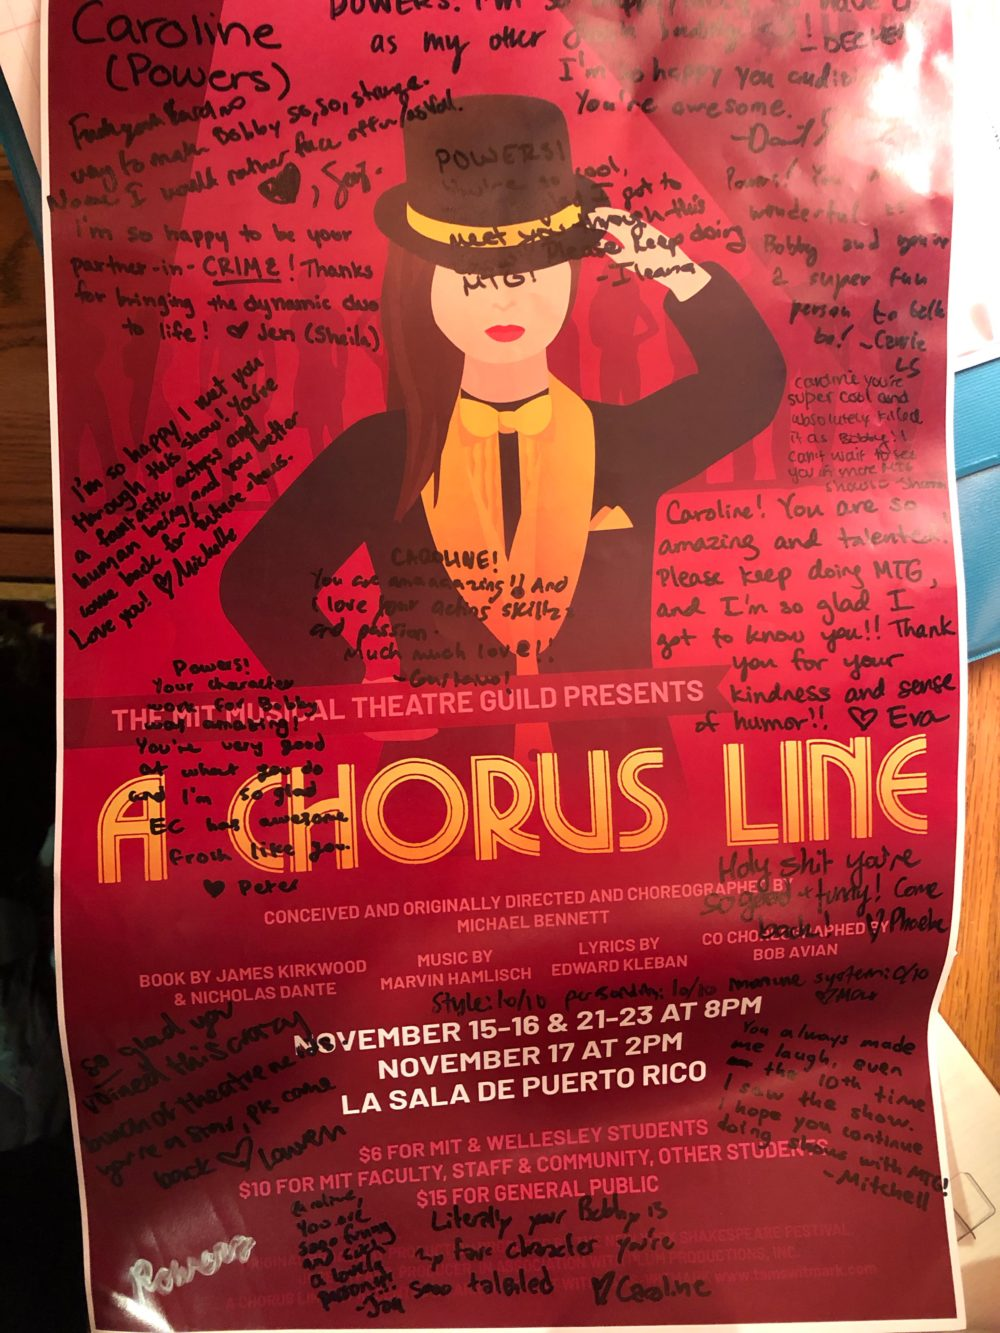 a poster for the show with many personalized messages written on it in sharpie